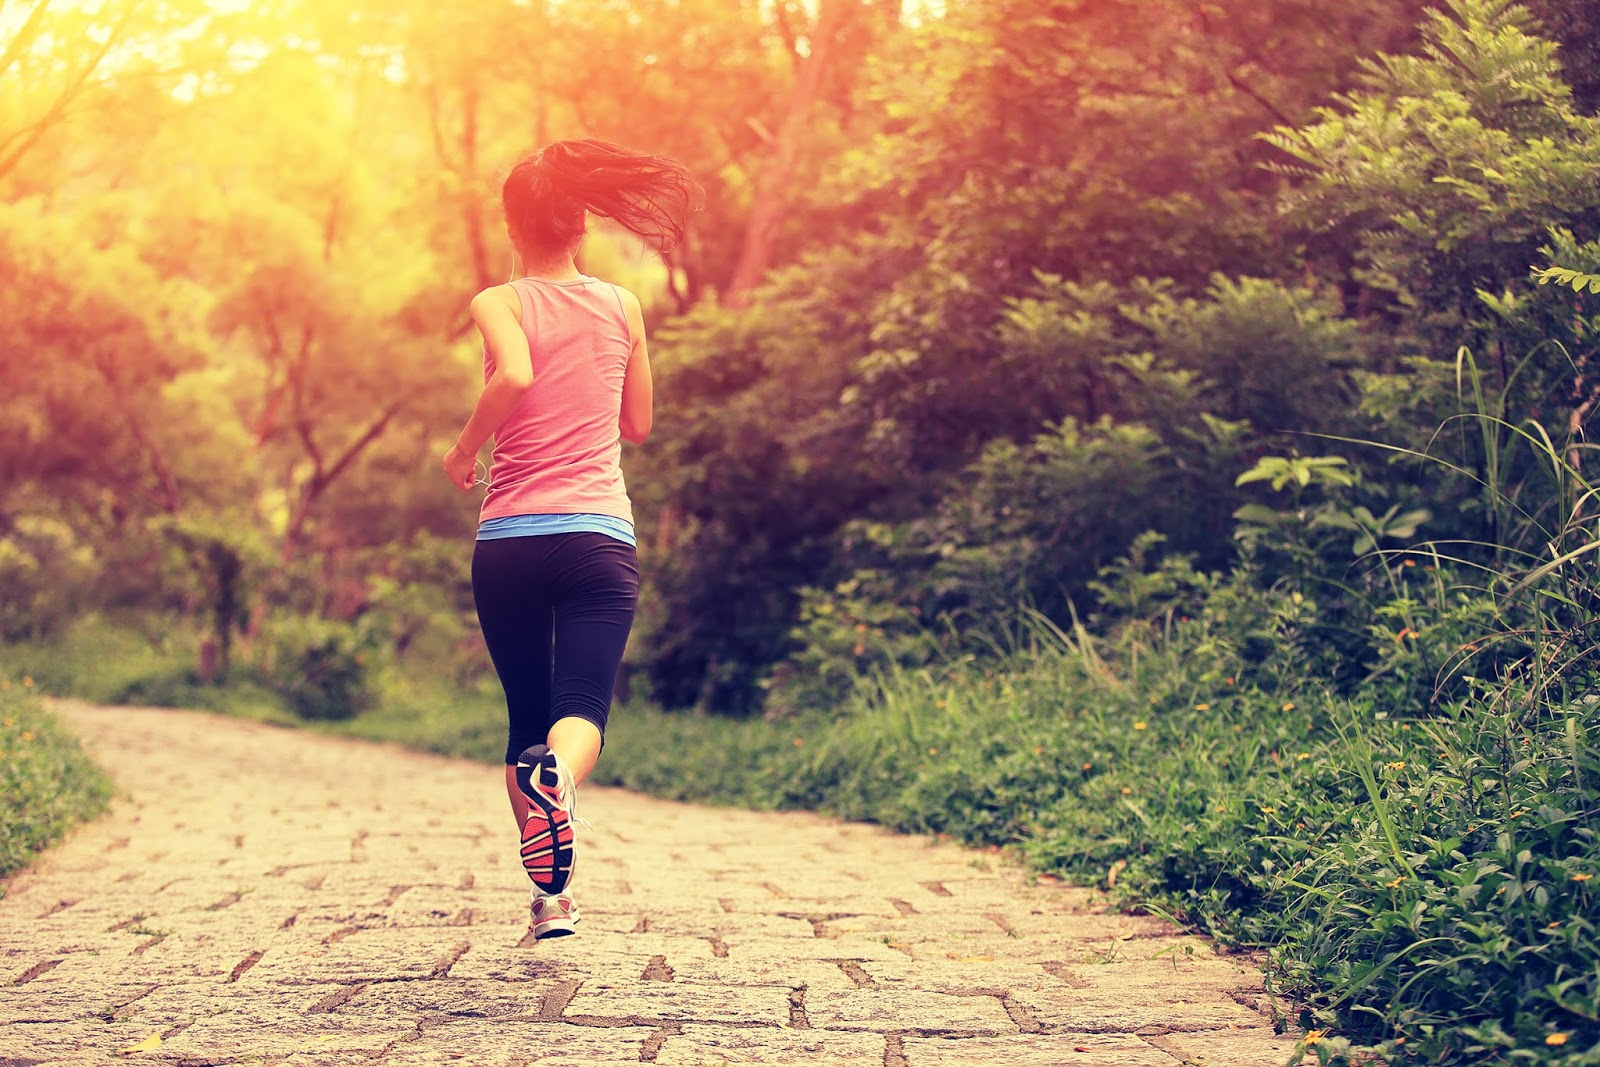 The benefits of a morning run extend beyond healthy living for features writer Davelle Lee - the adrenaline spike she gets from her 5am runs helps her be more productive.